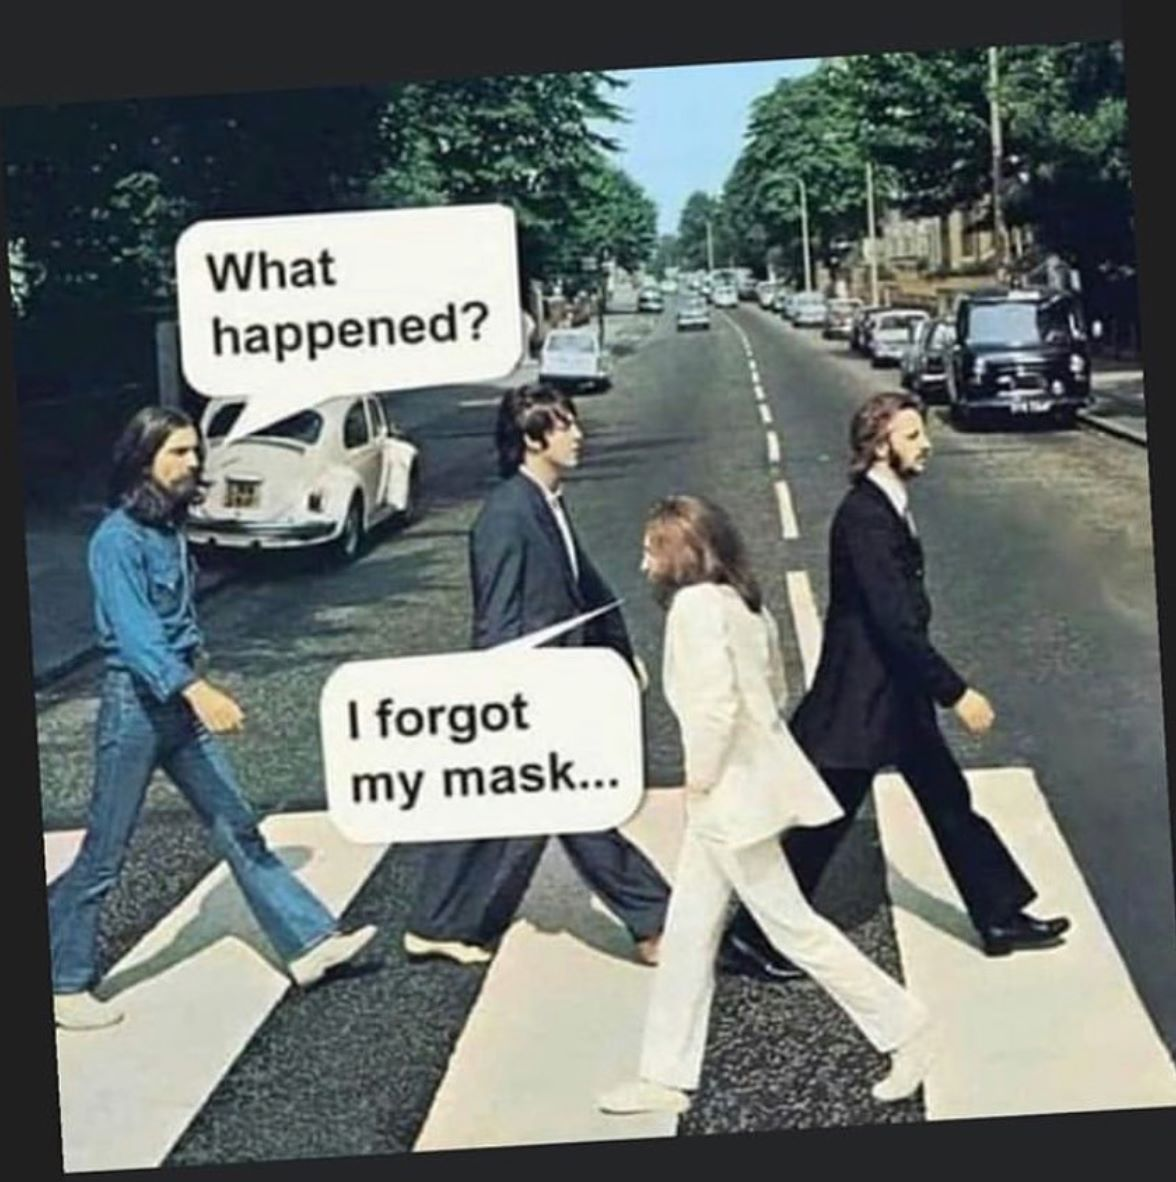 The Beatles forgot my mask meme shared in TOVI Play